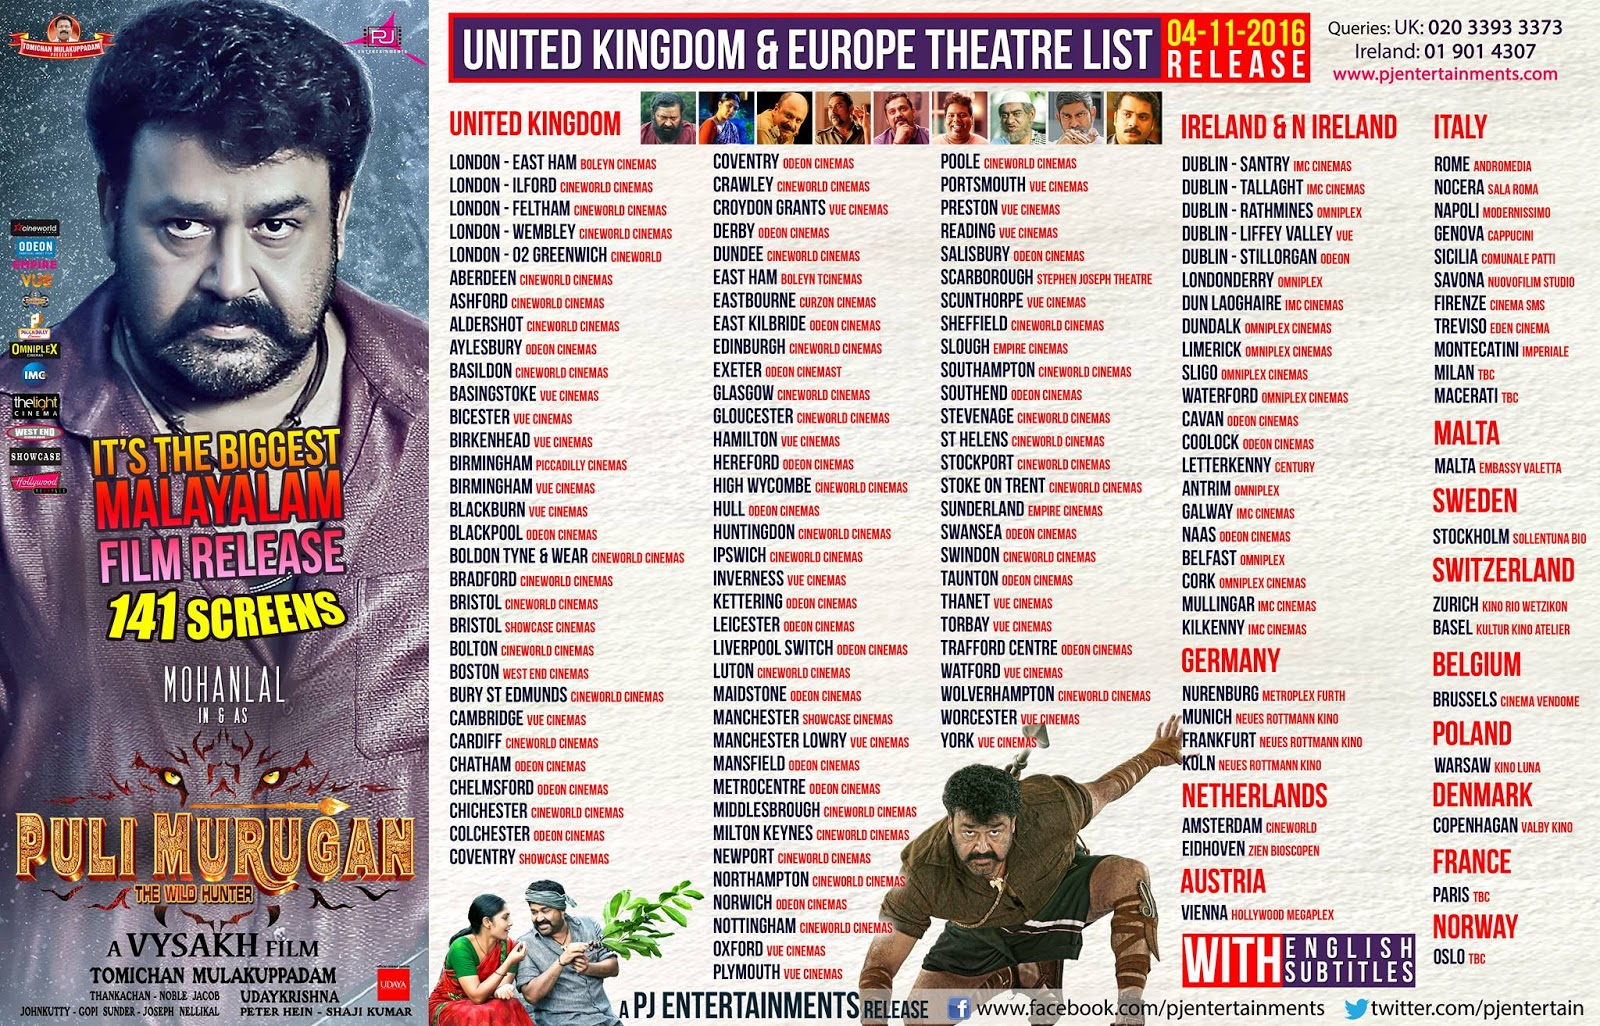 Pulimurugan U.K and  Europe Theater List